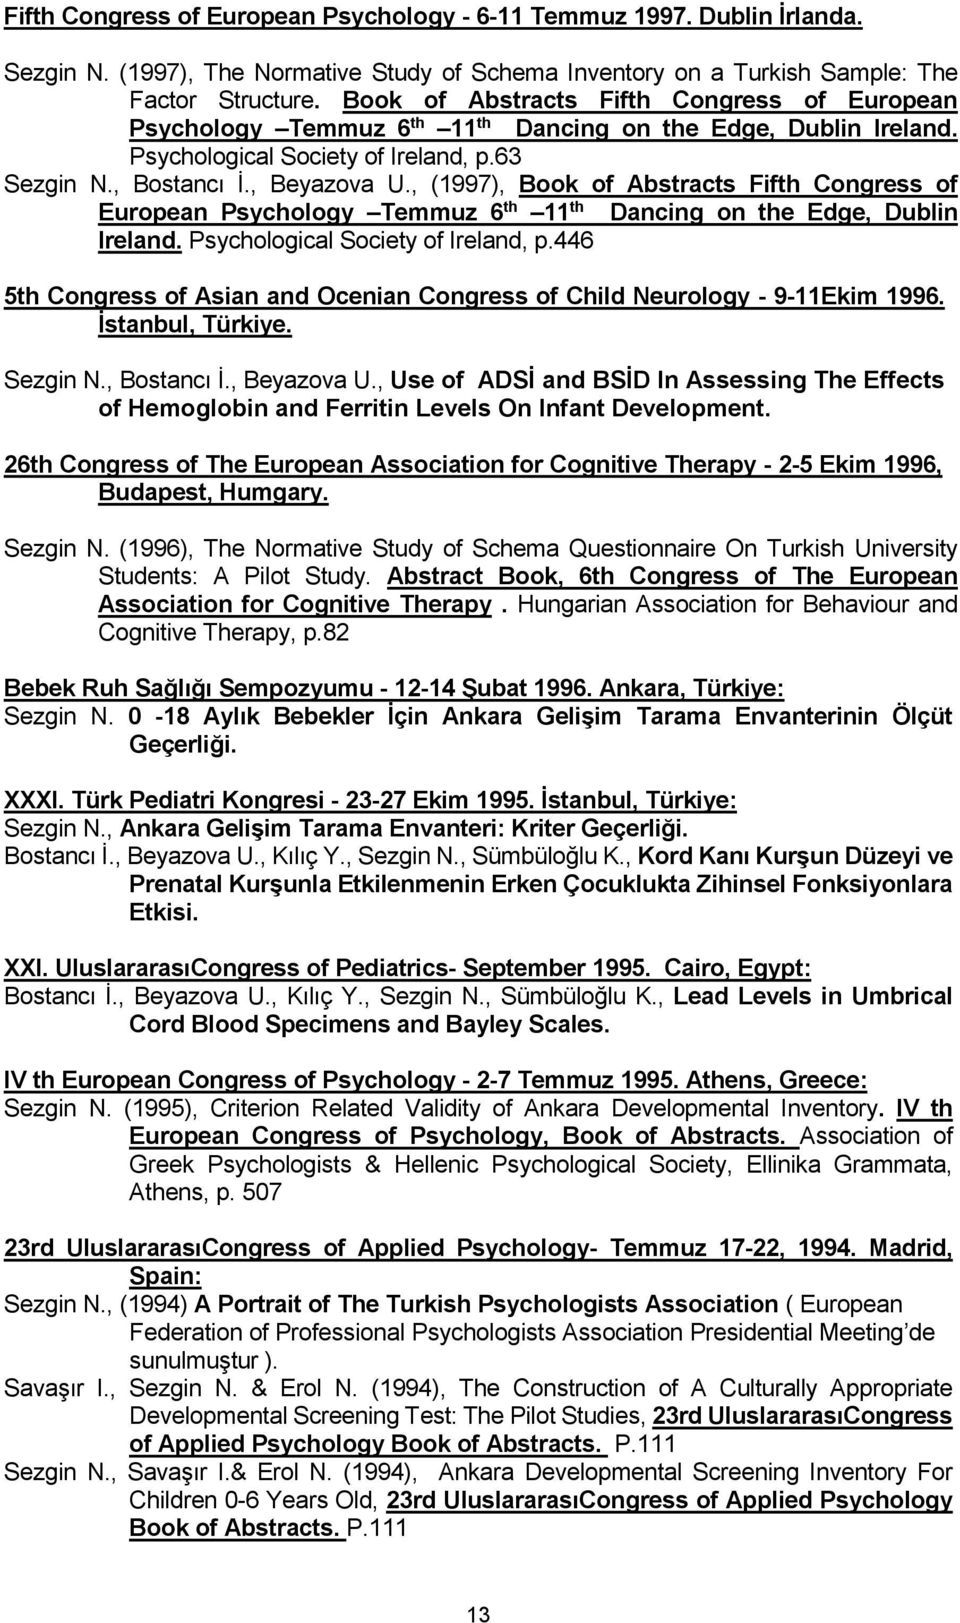 , (1997), Book of Abstracts Fifth Congress of European Psychology Temmuz 6 th 11 th Dancing on the Edge, Dublin Ireland. Psychological Society of Ireland, p.